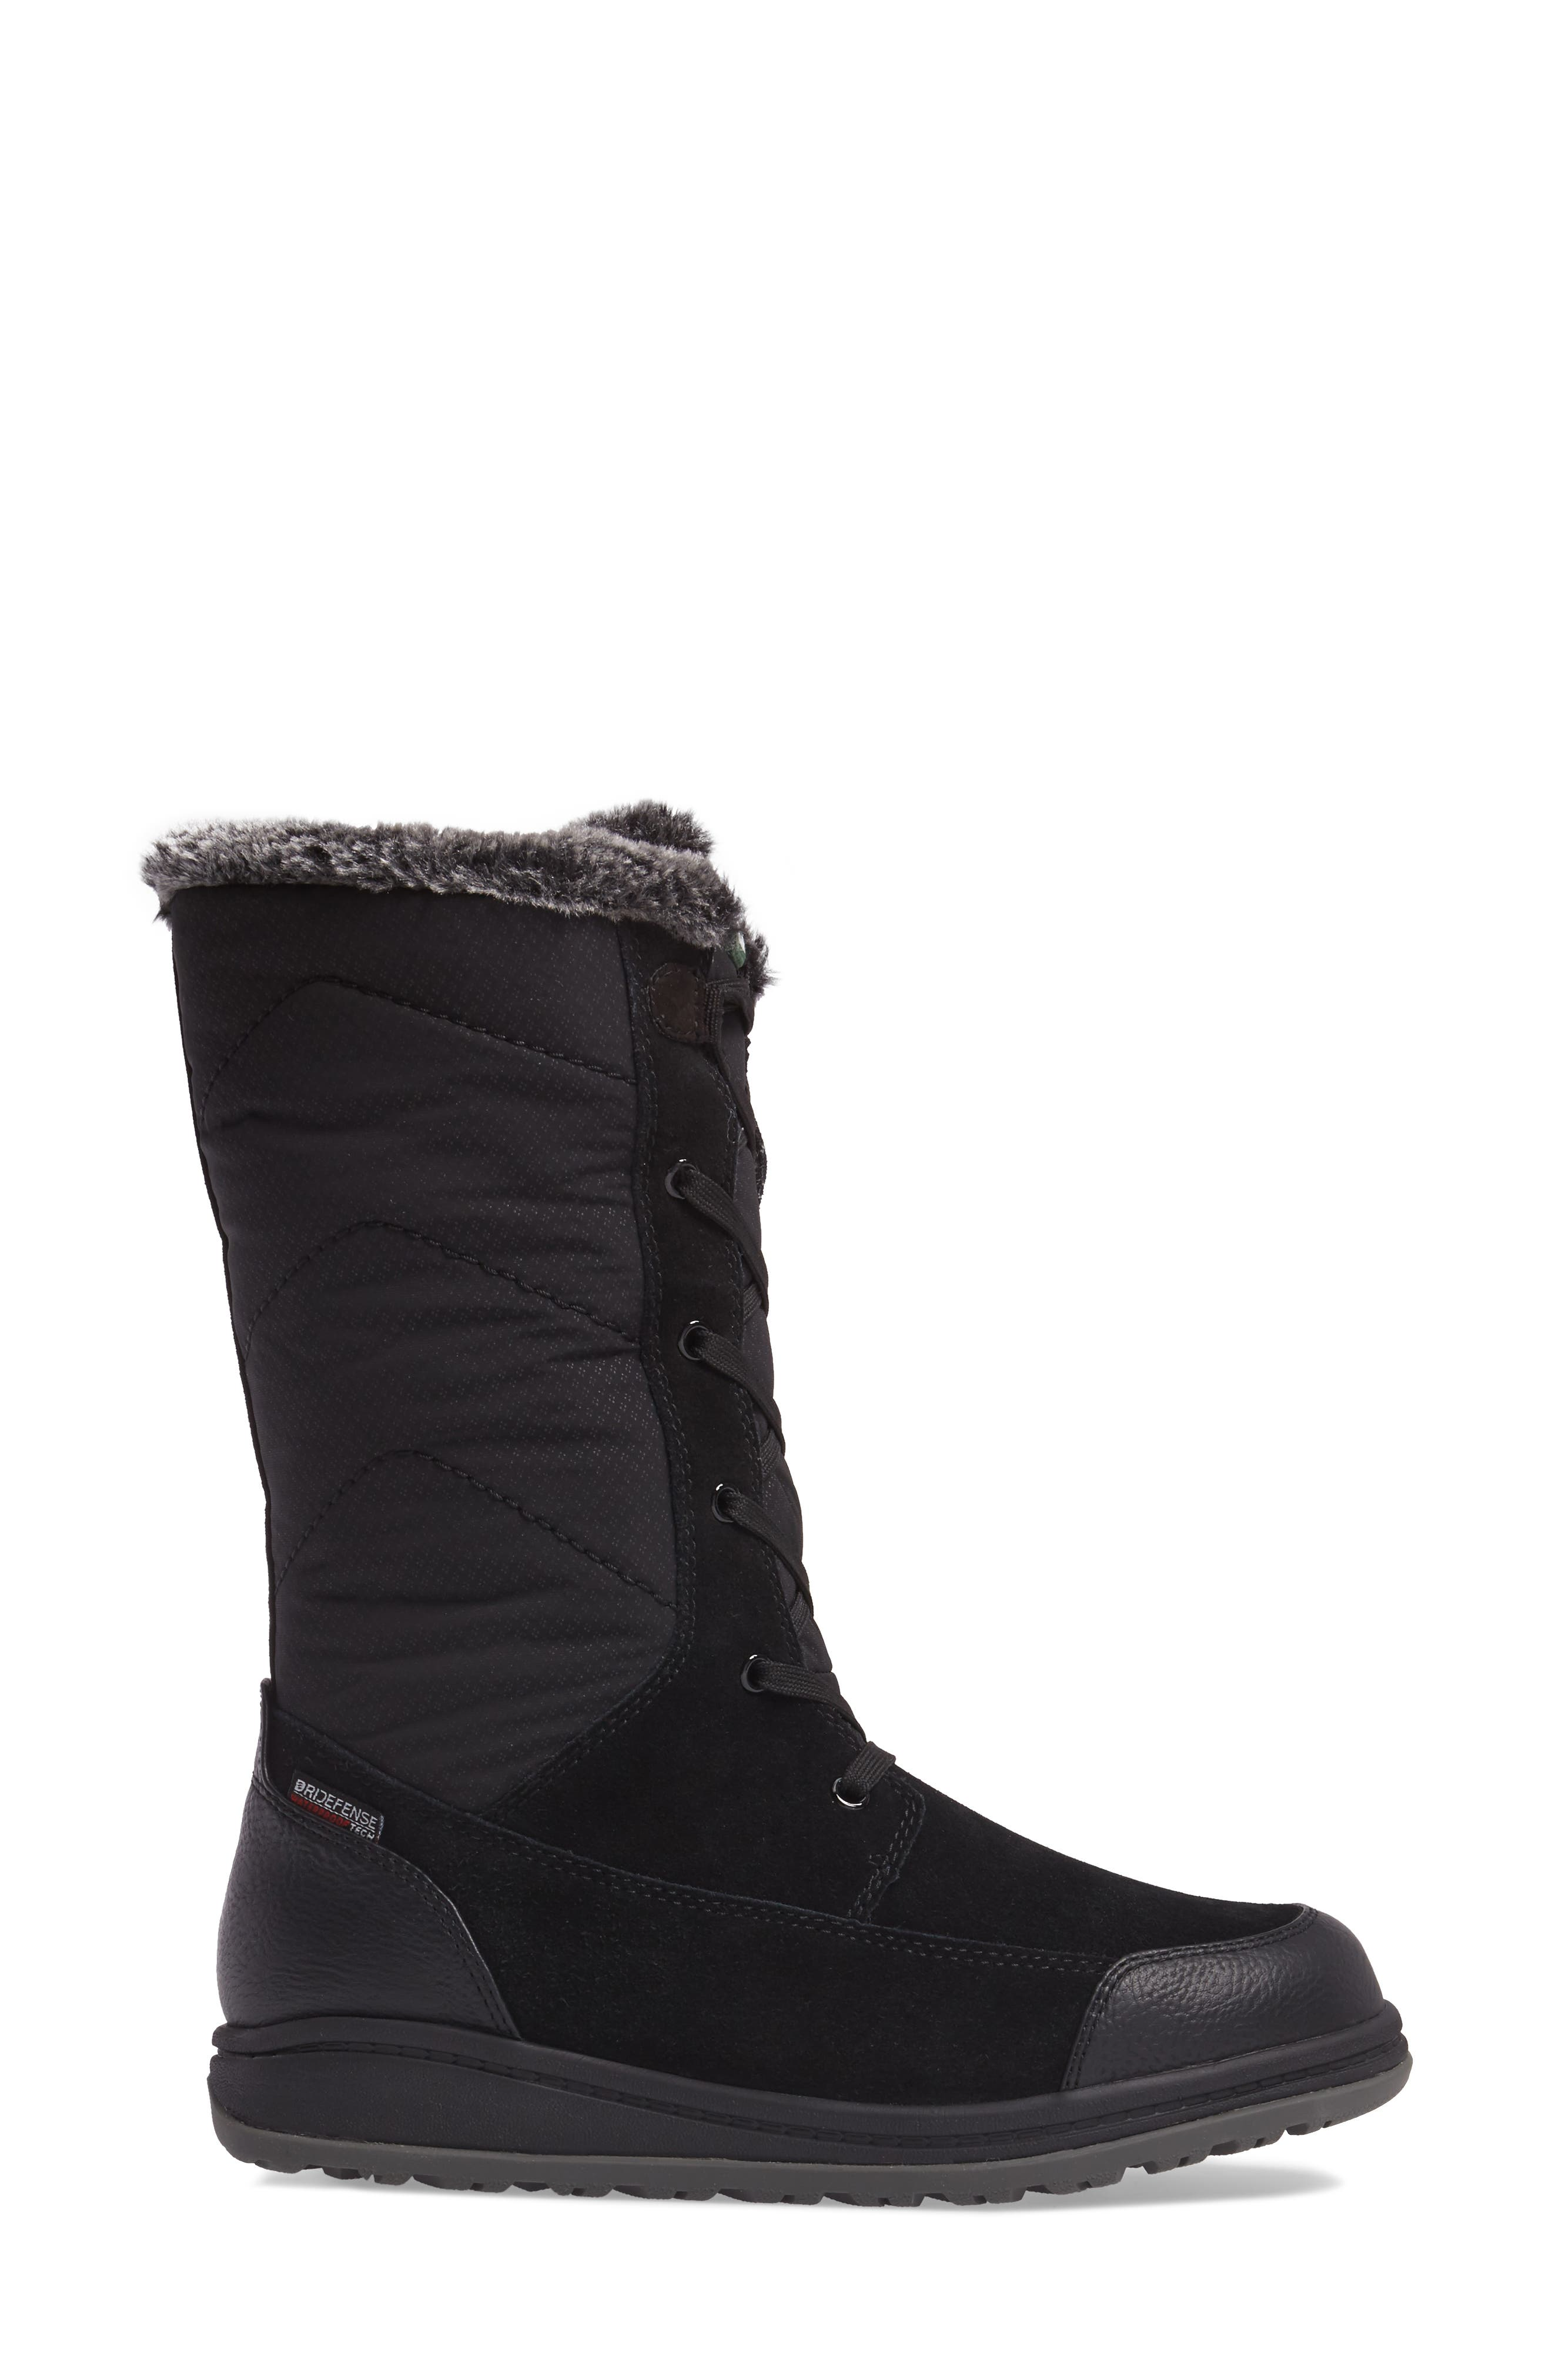 QuincyS Waterproof Boot,                             Alternate thumbnail 3, color,                             BLACK FABRIC